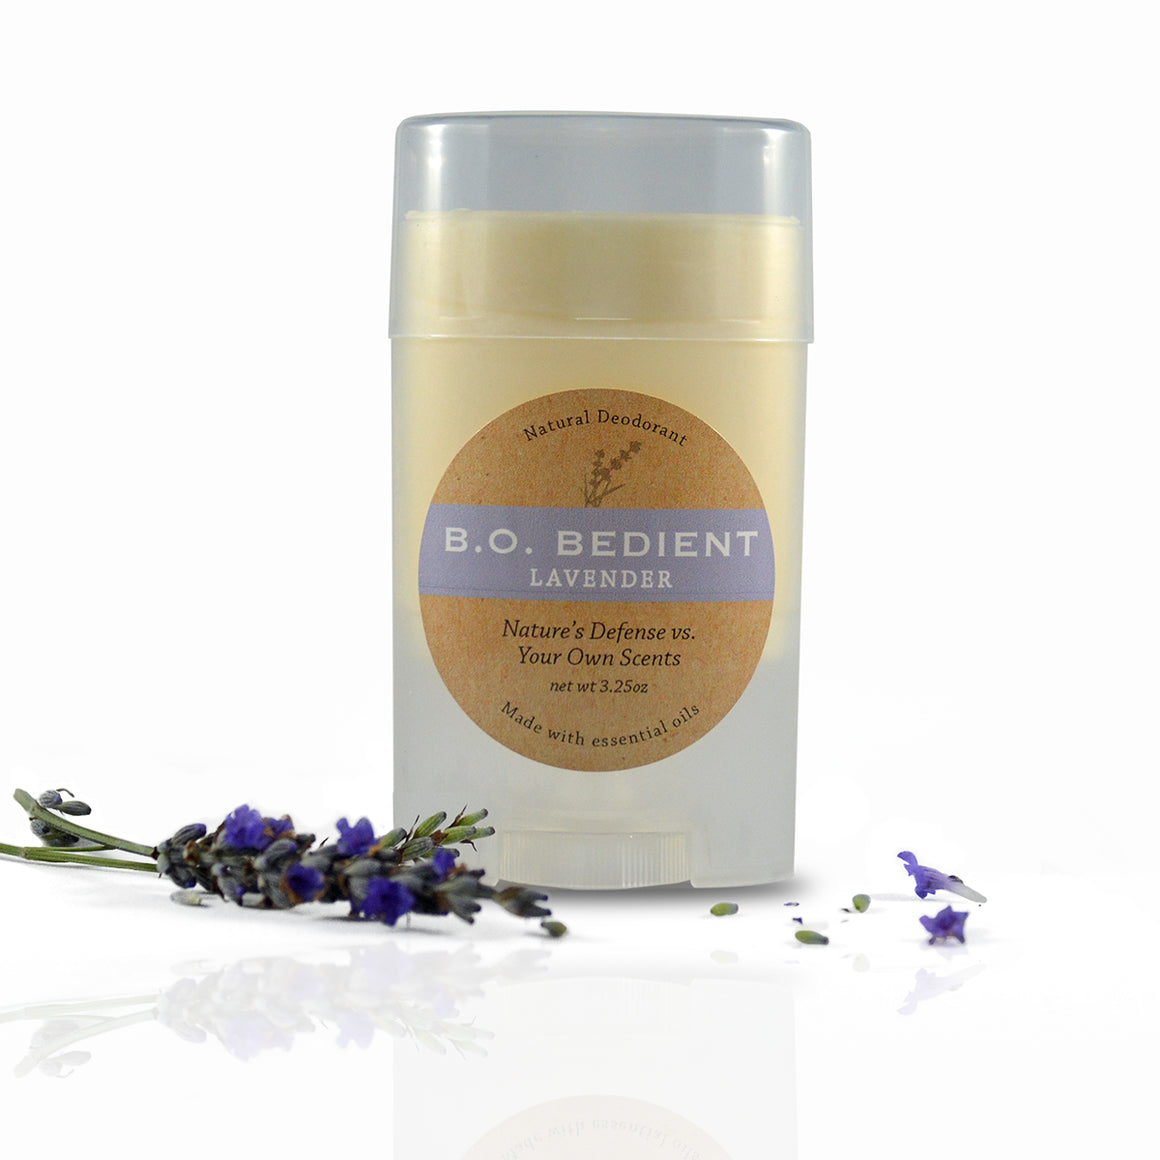 All Natural Deodorant - Lavender Stick